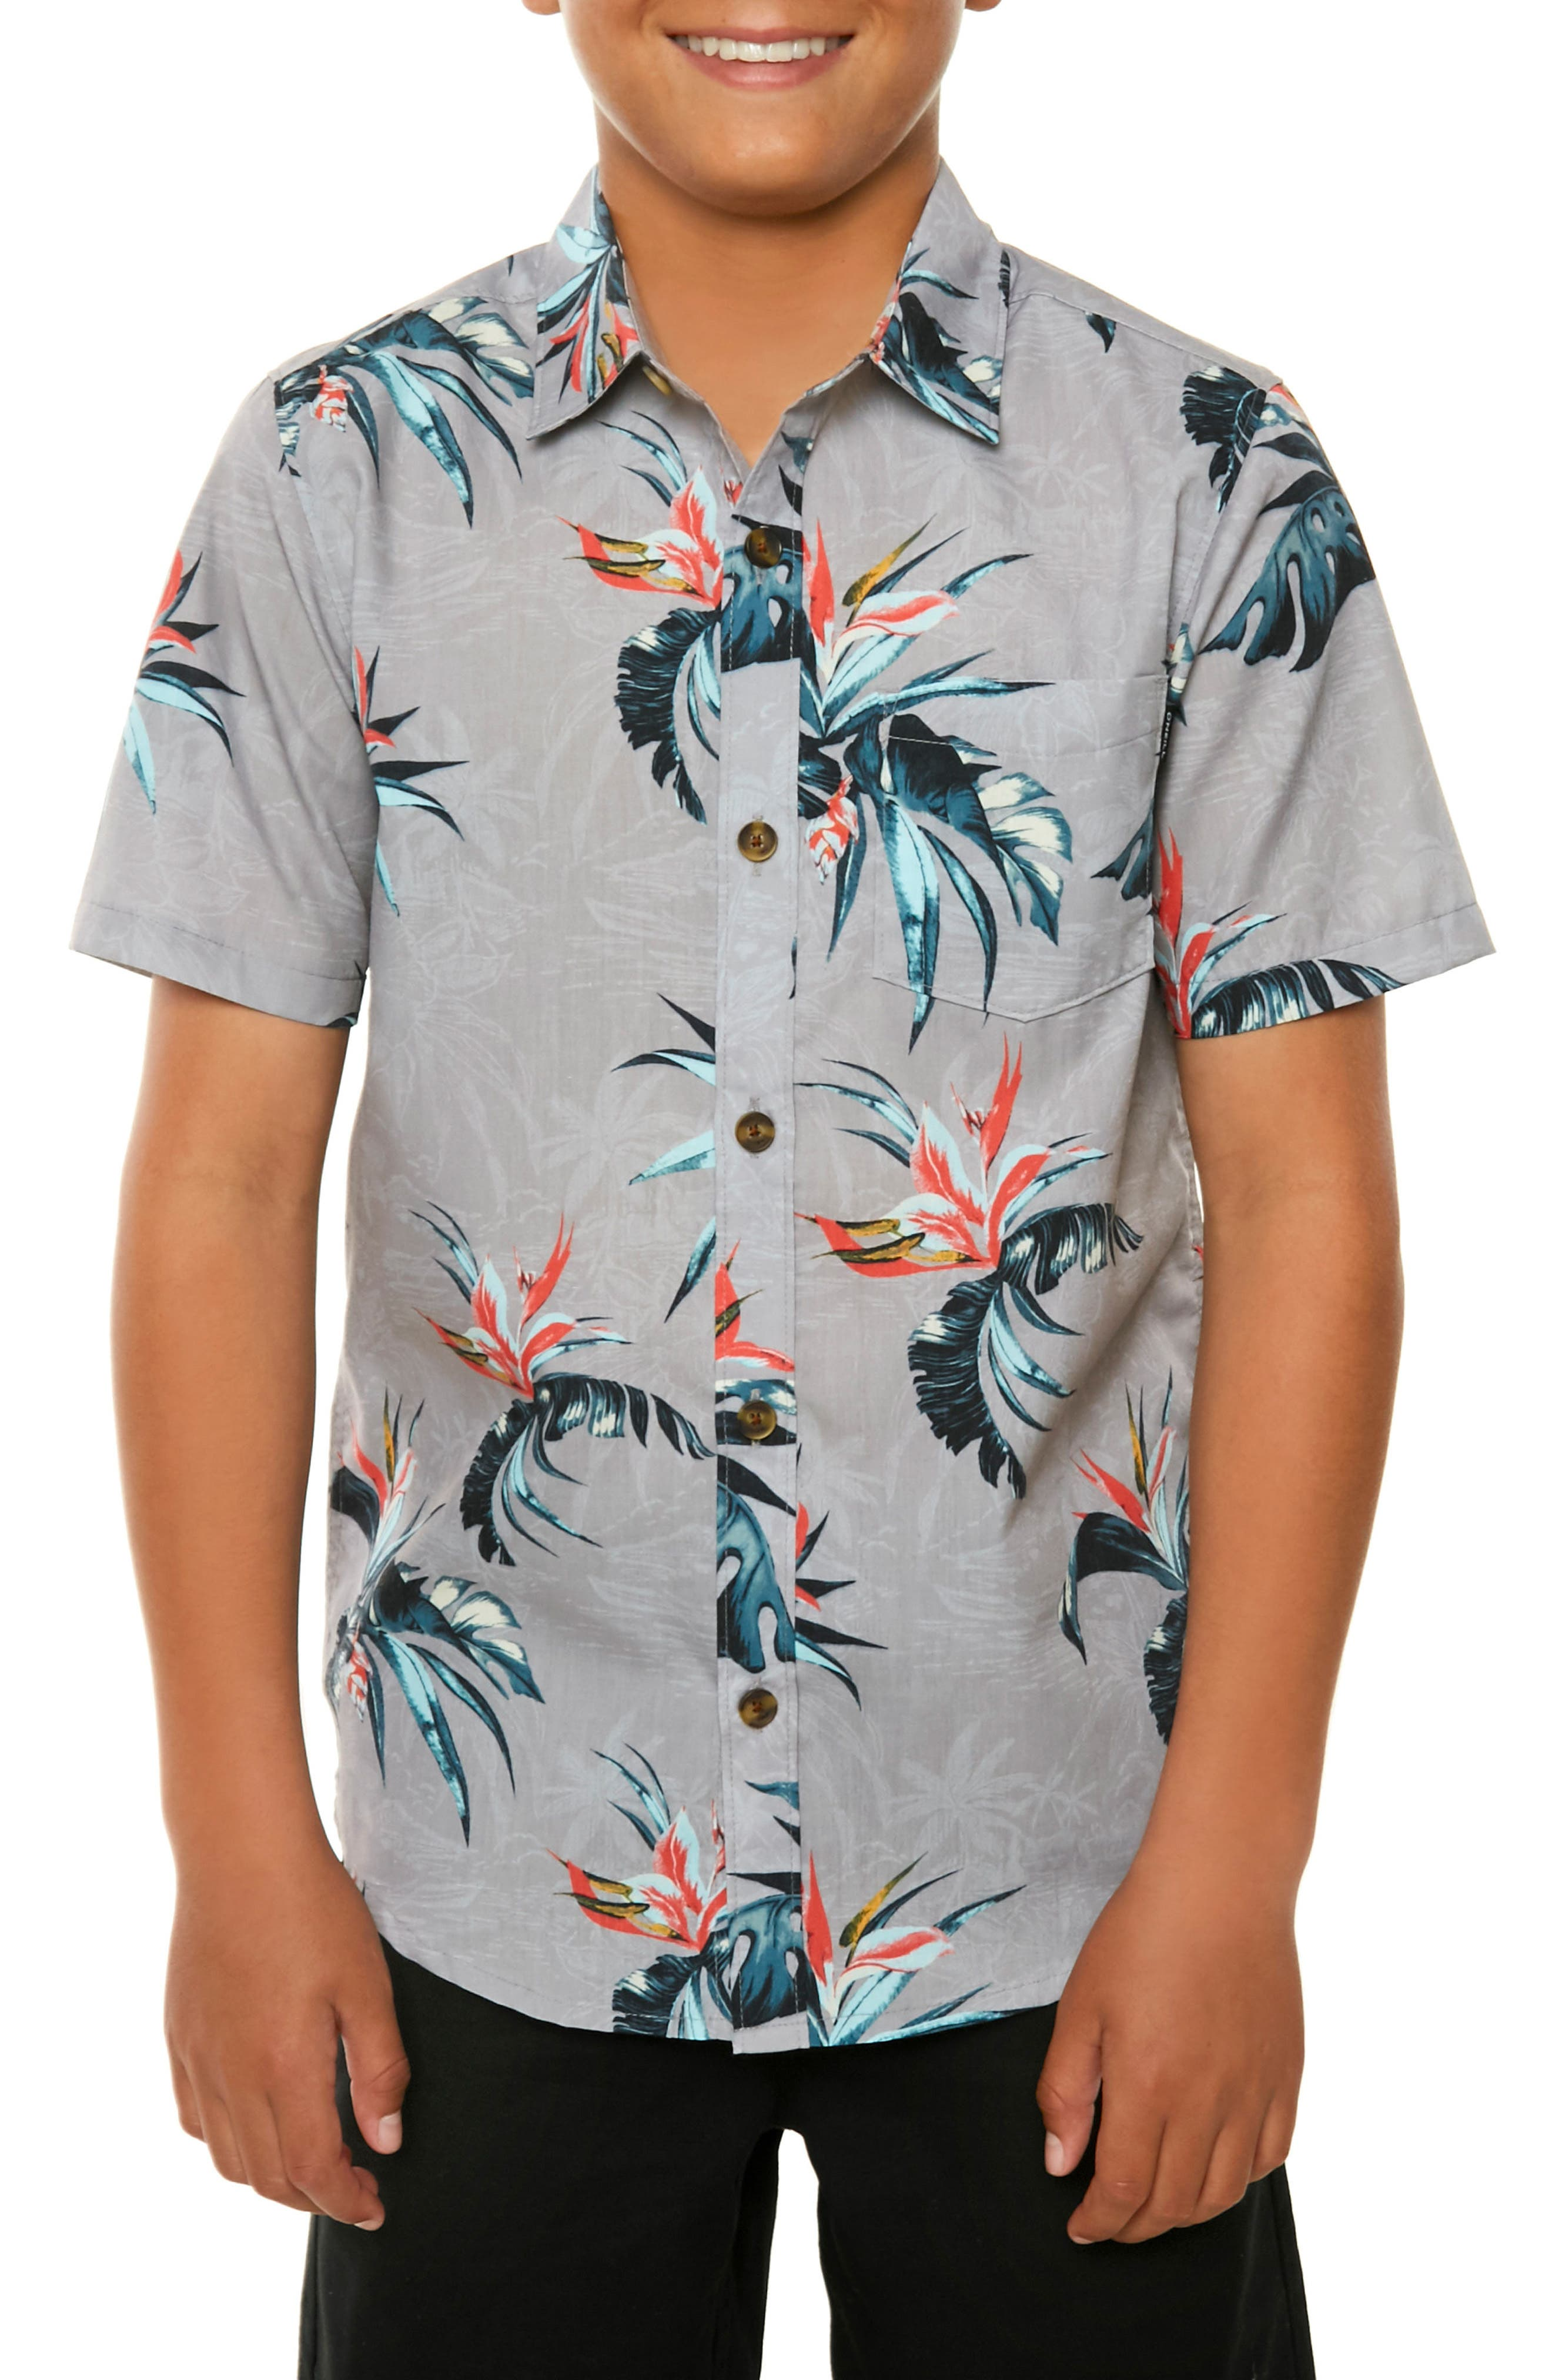 Alternate Image 1 Selected - O'Neill Islander Floral Print Woven Shirt (Big Boys)